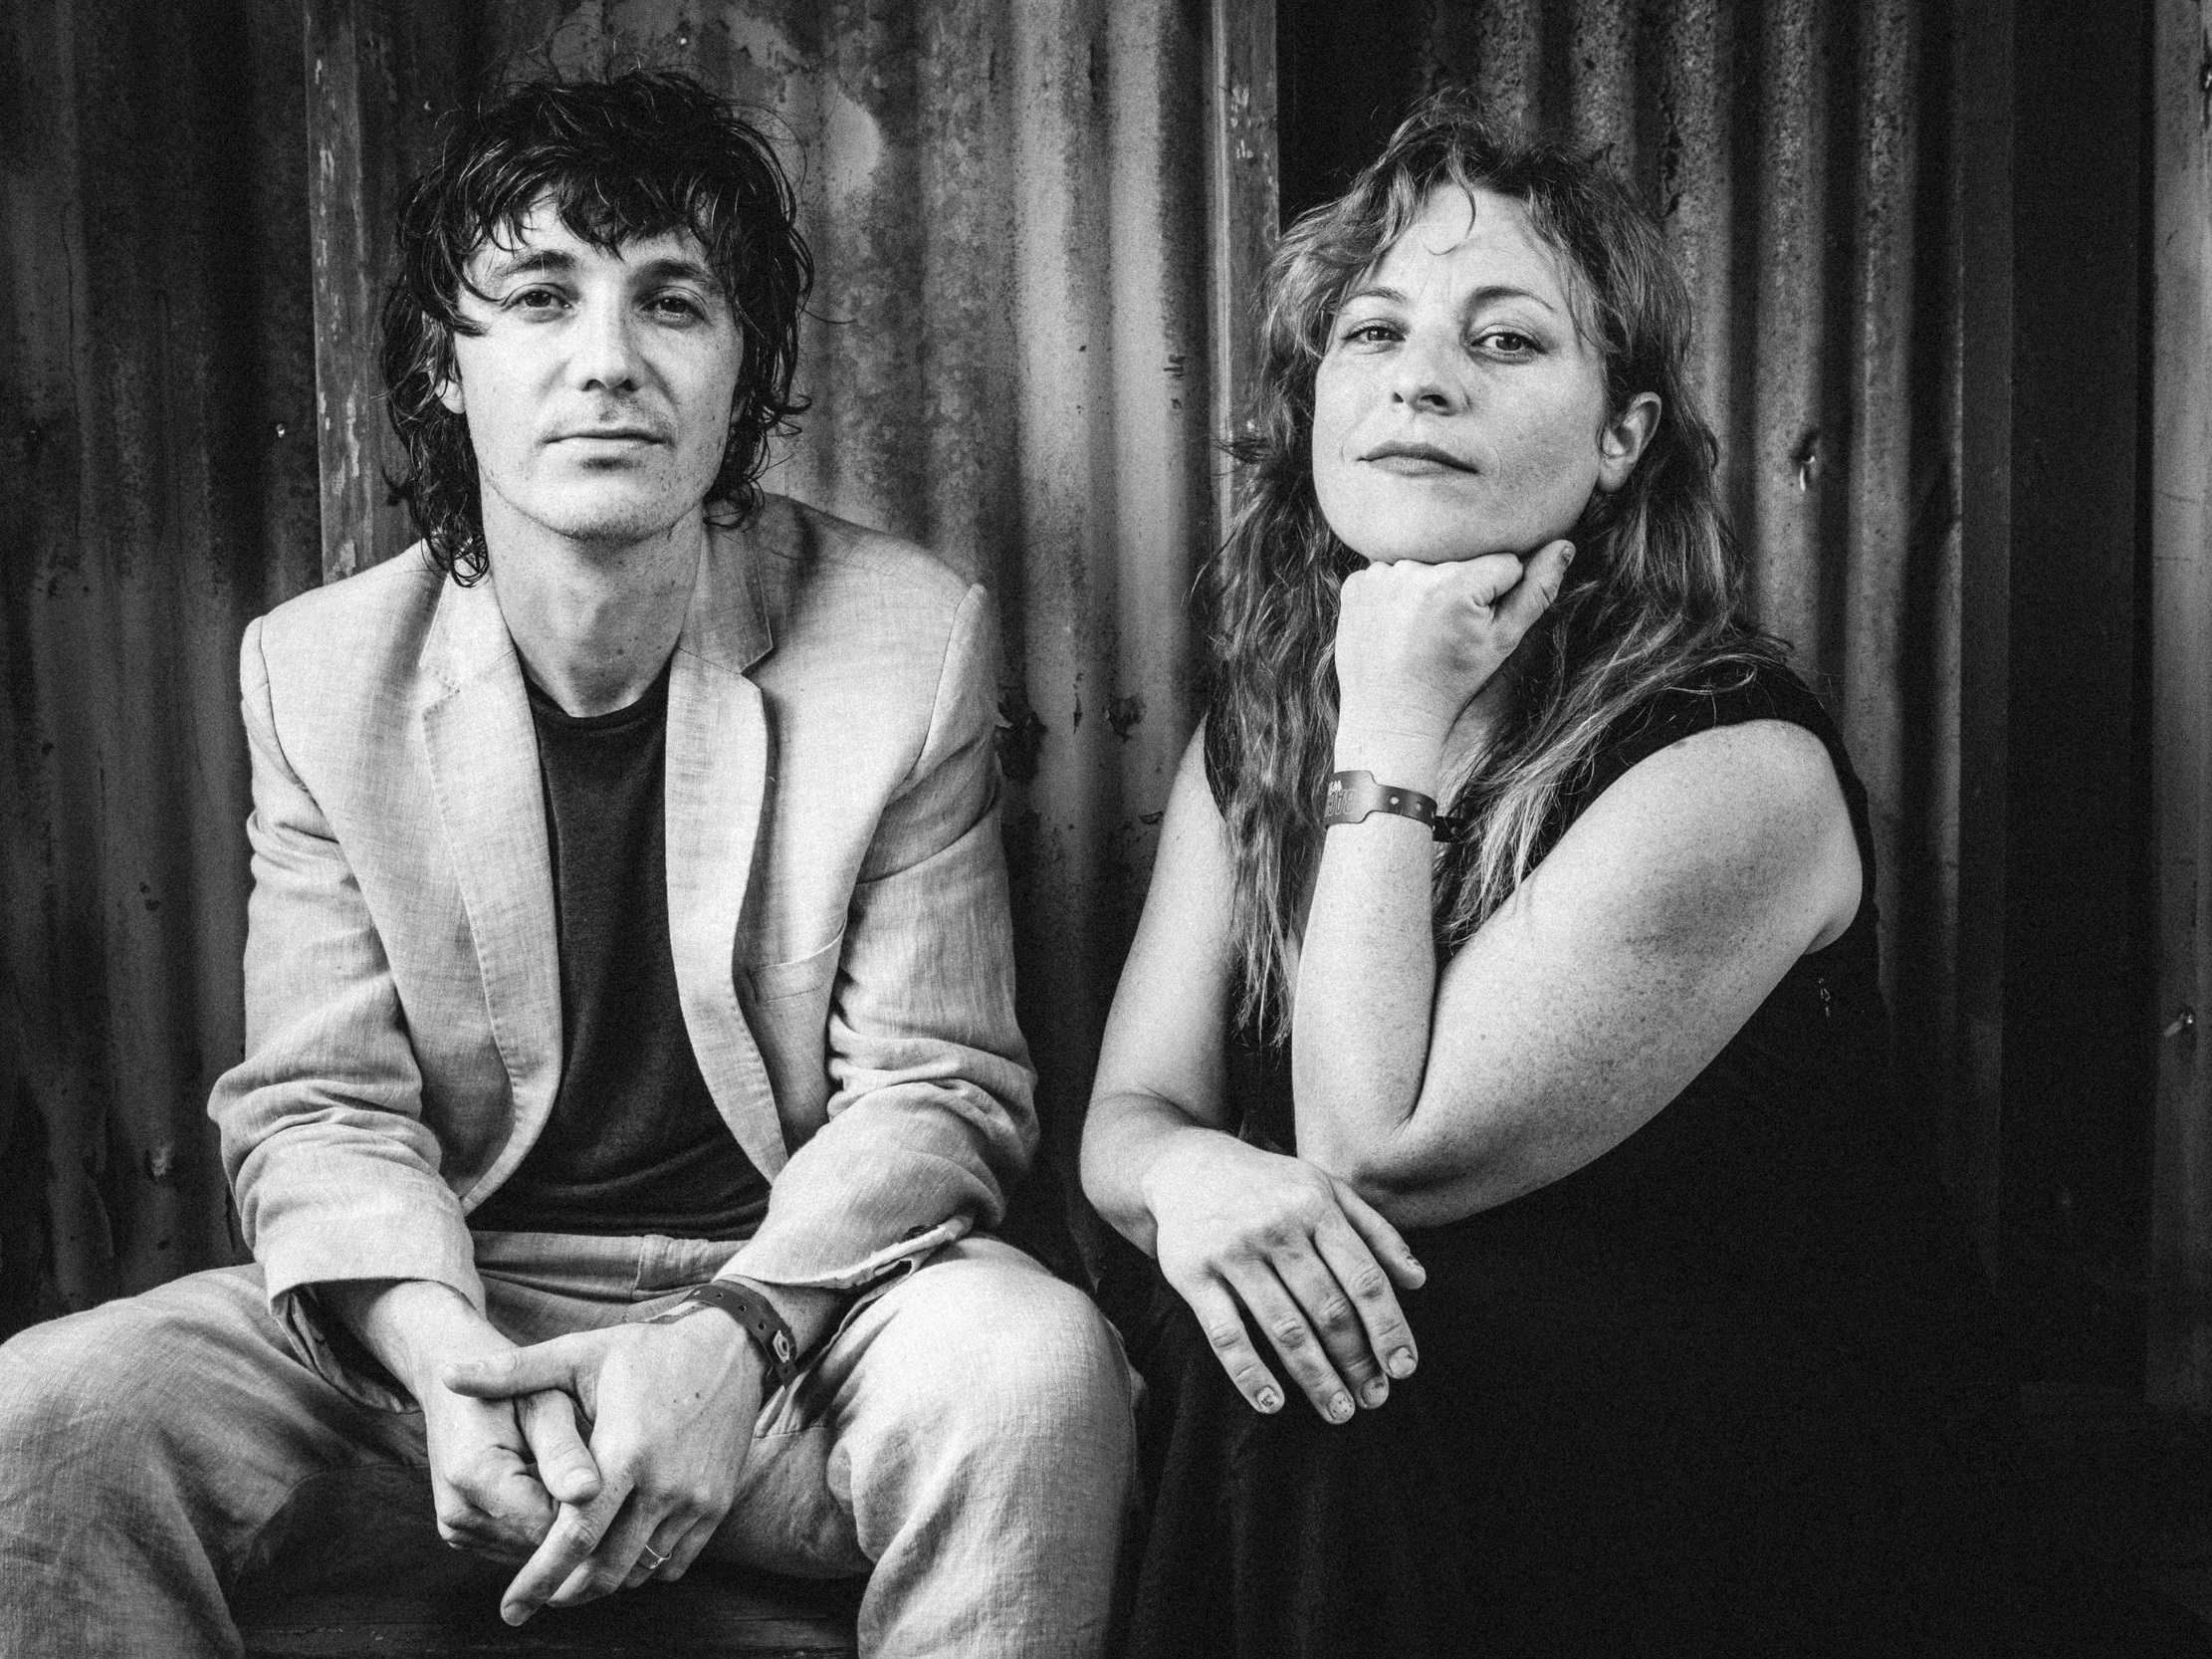 Shovels-Rope-by-Todd-Cooper-B_W.jpg